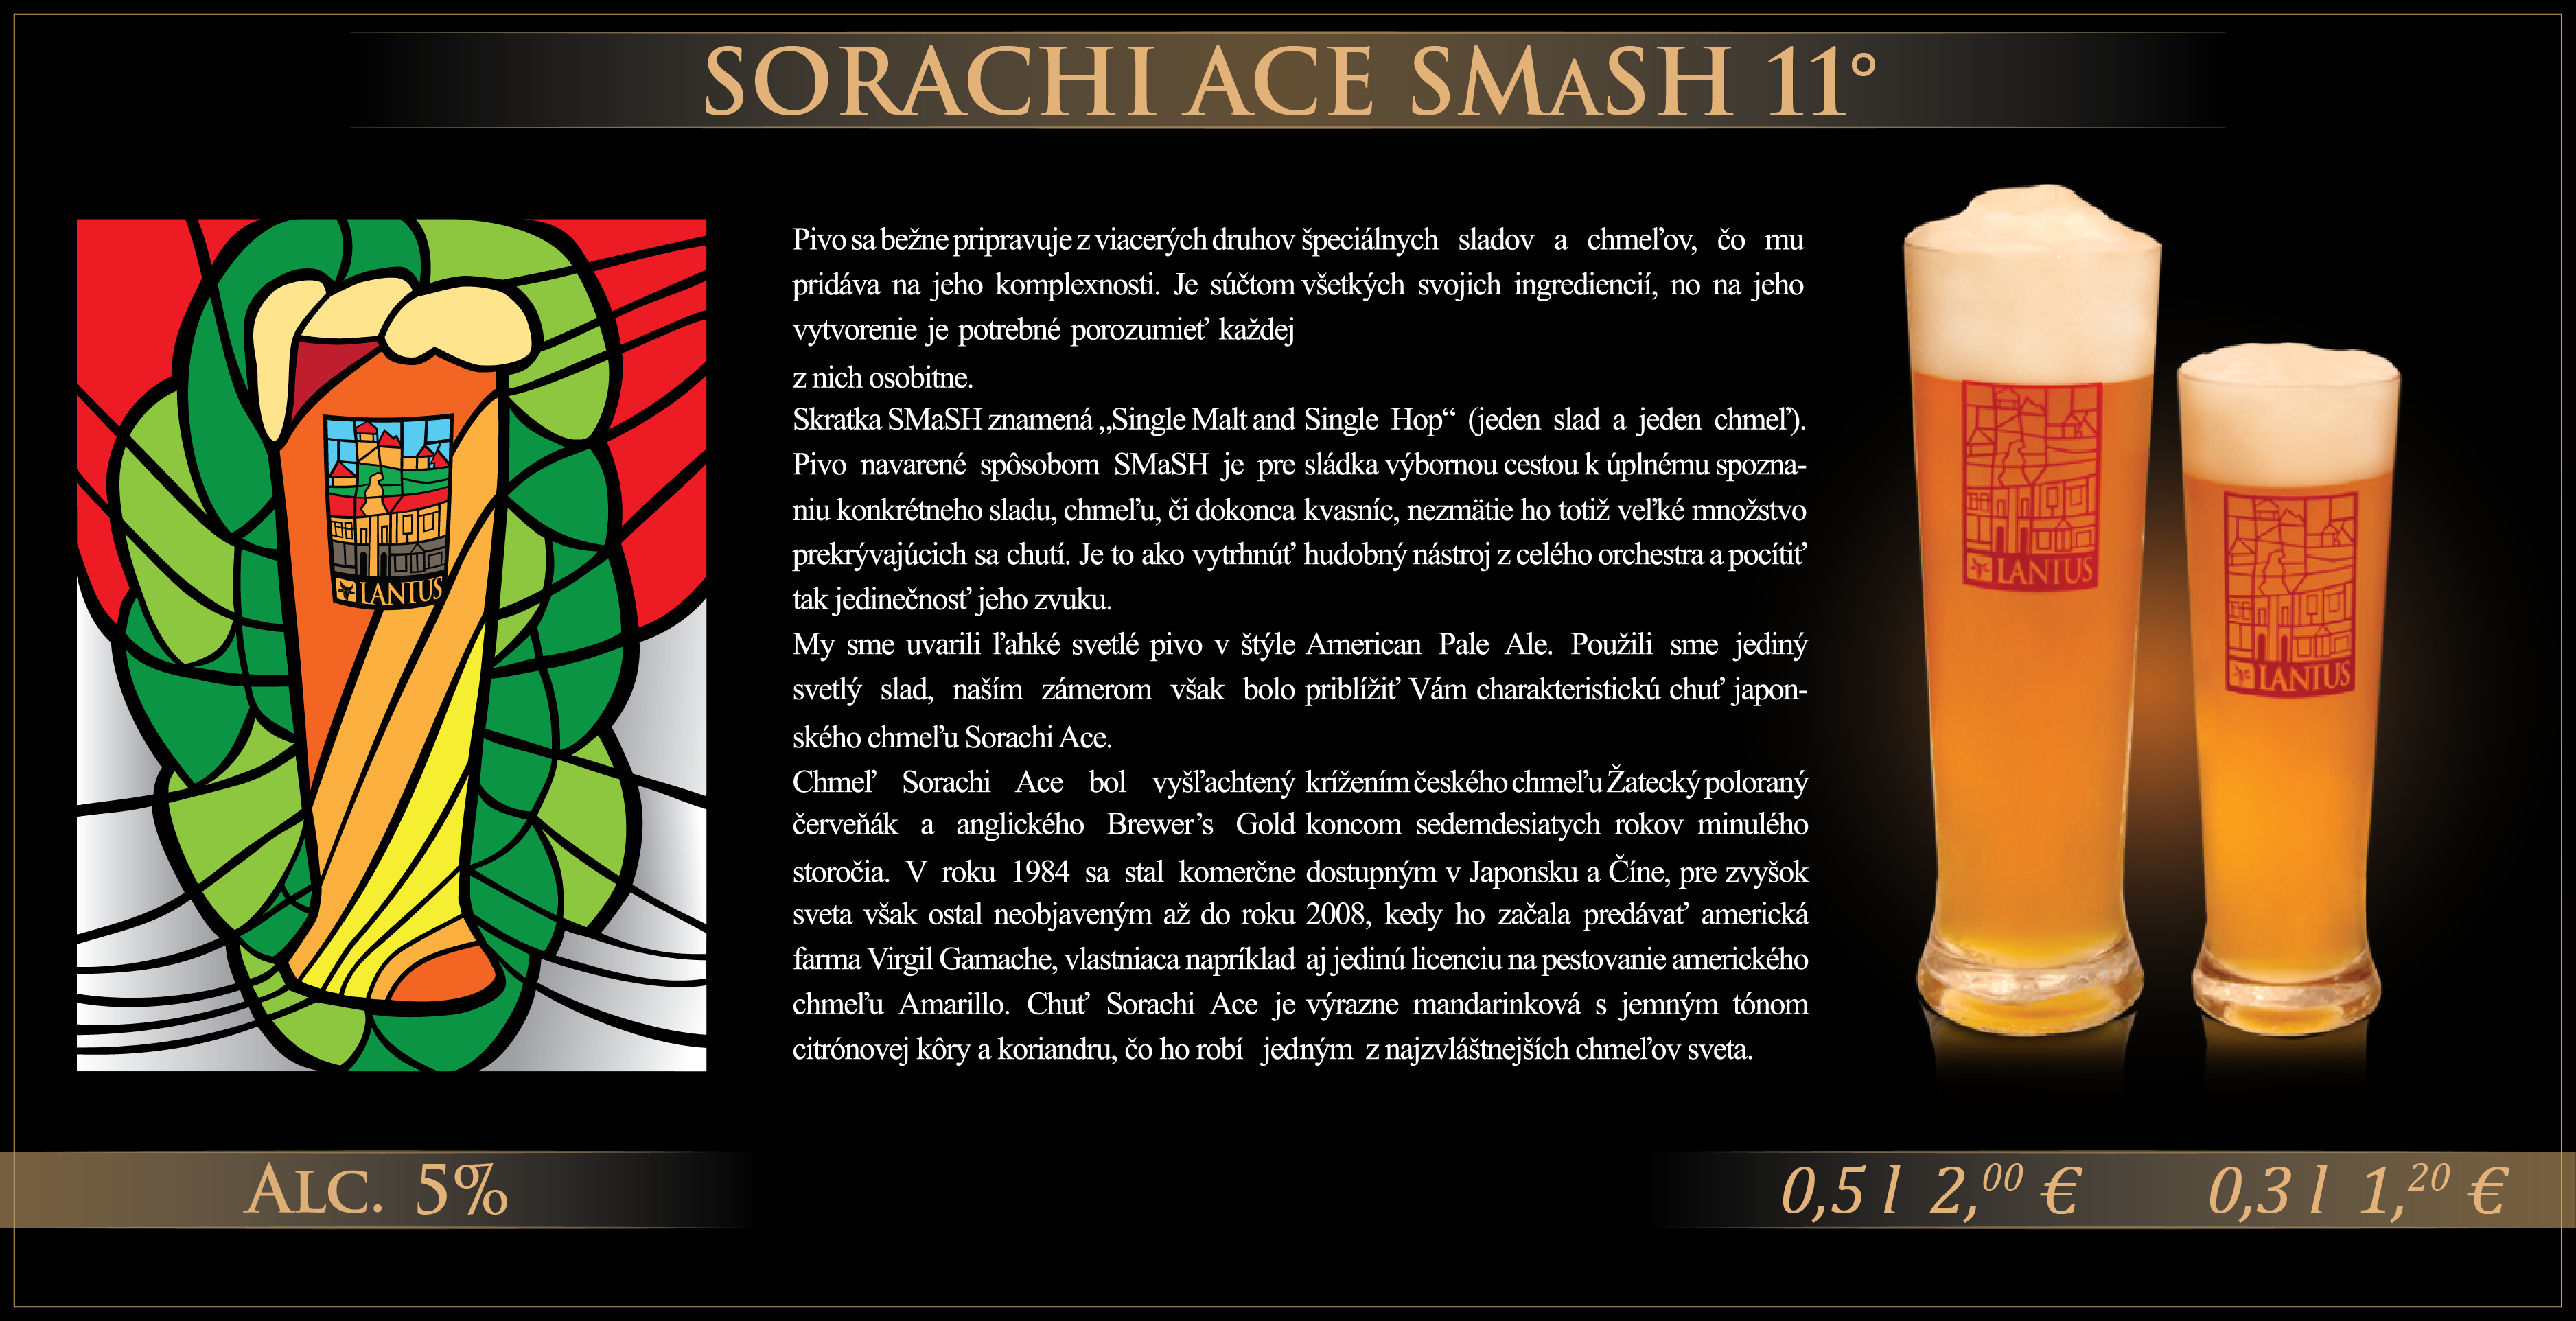 SORACHI ace smash11 WEB-02-02